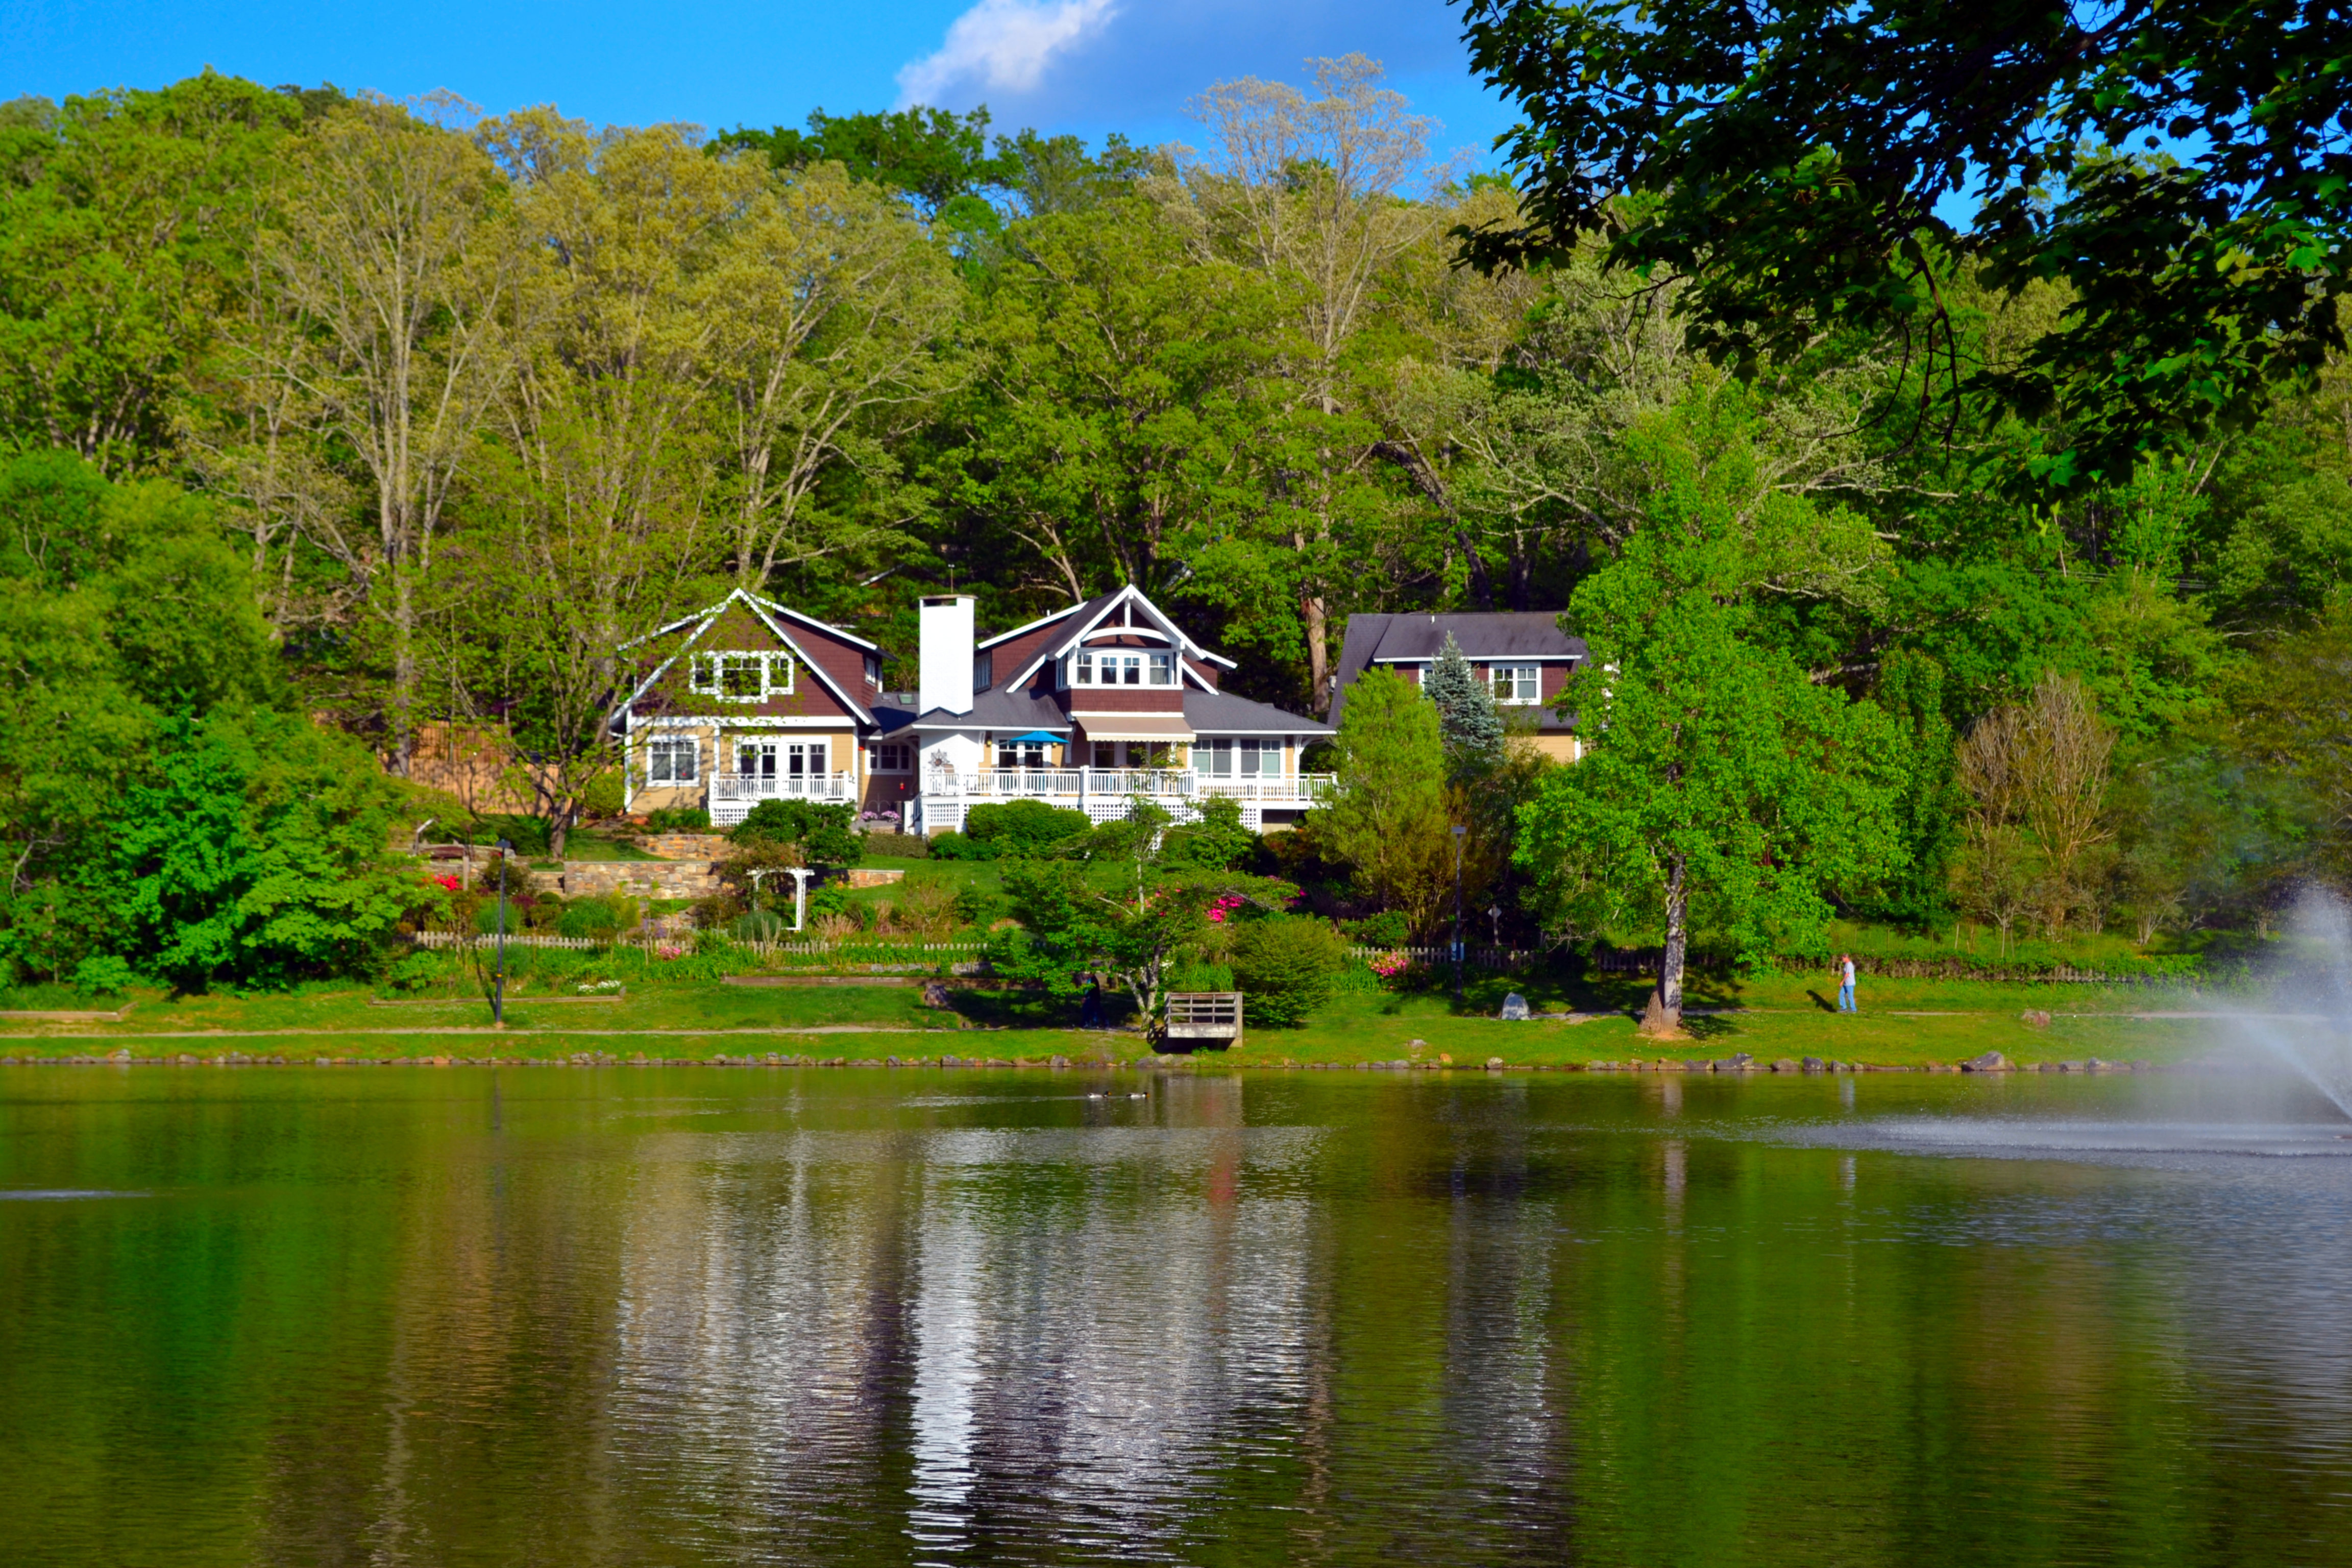 A small house in a body of water at Arbor House of Black Mountain Bed and Breakfast.